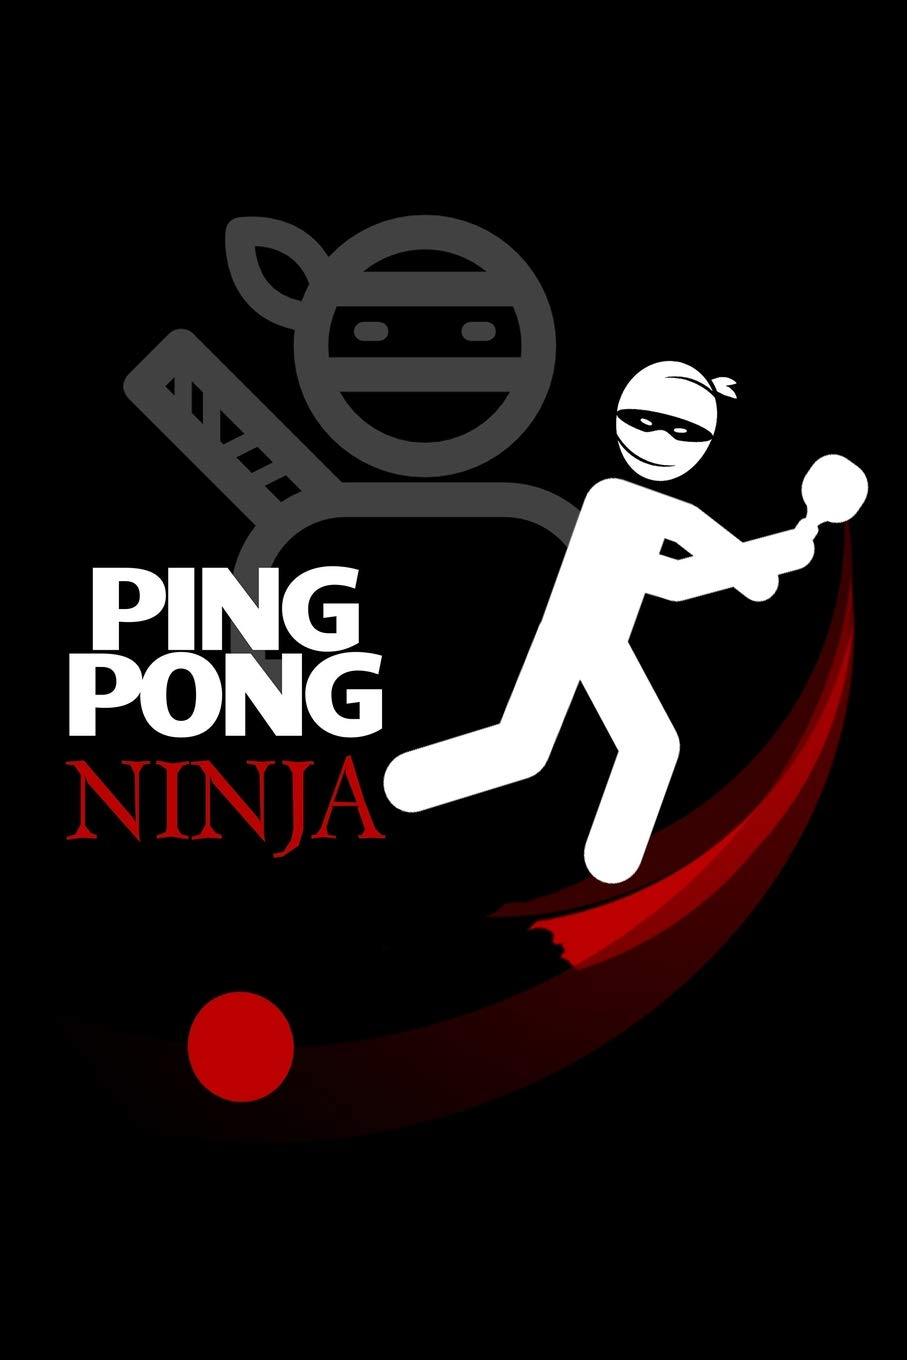 Ping Pong Ninja: Blank Lined Journal to Write In - Ruled ...